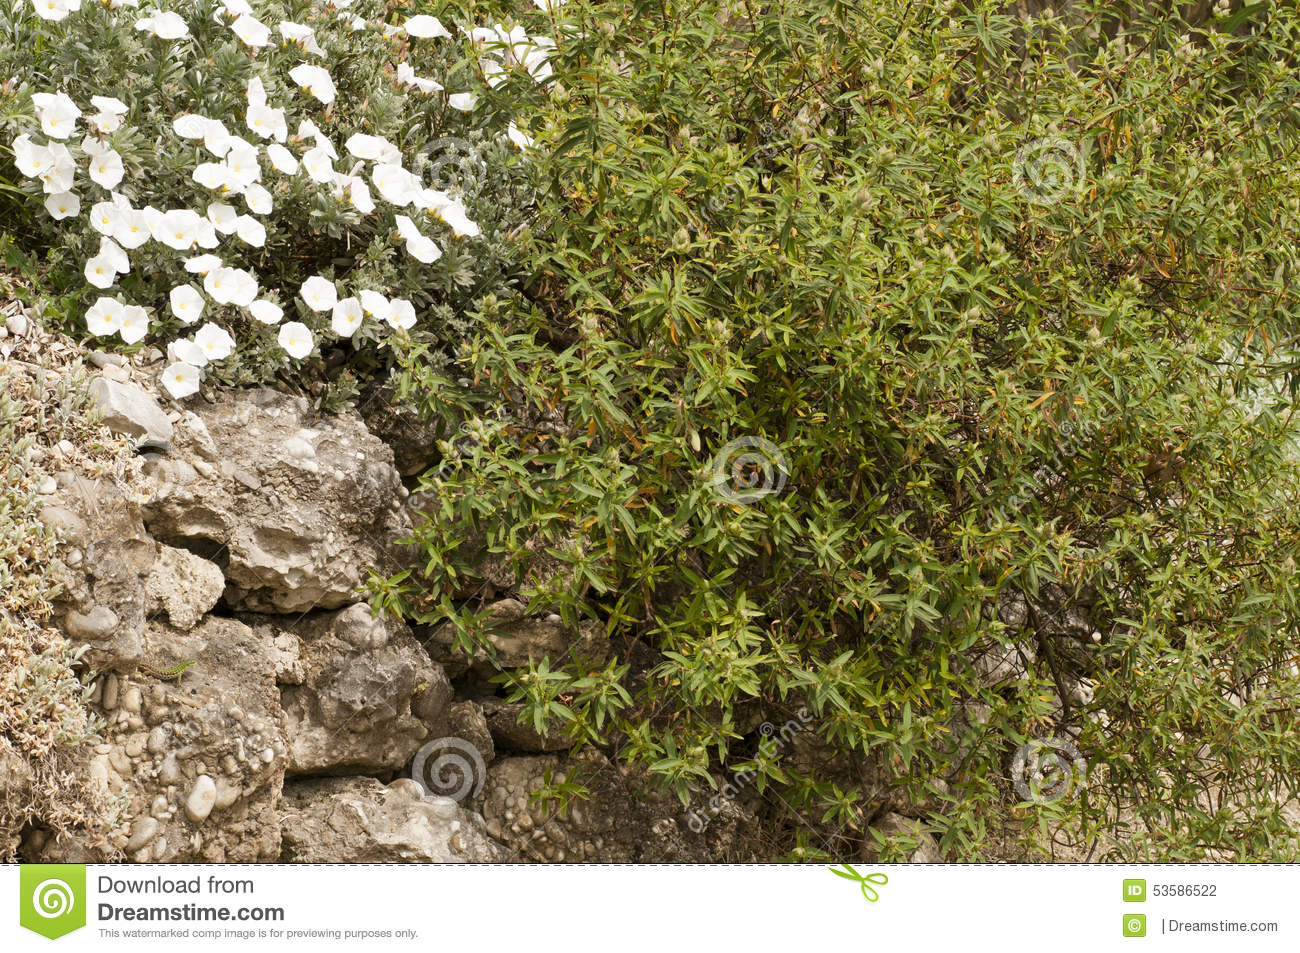 White flowers and evergreen bush in the rock stock photo image of download comp mightylinksfo